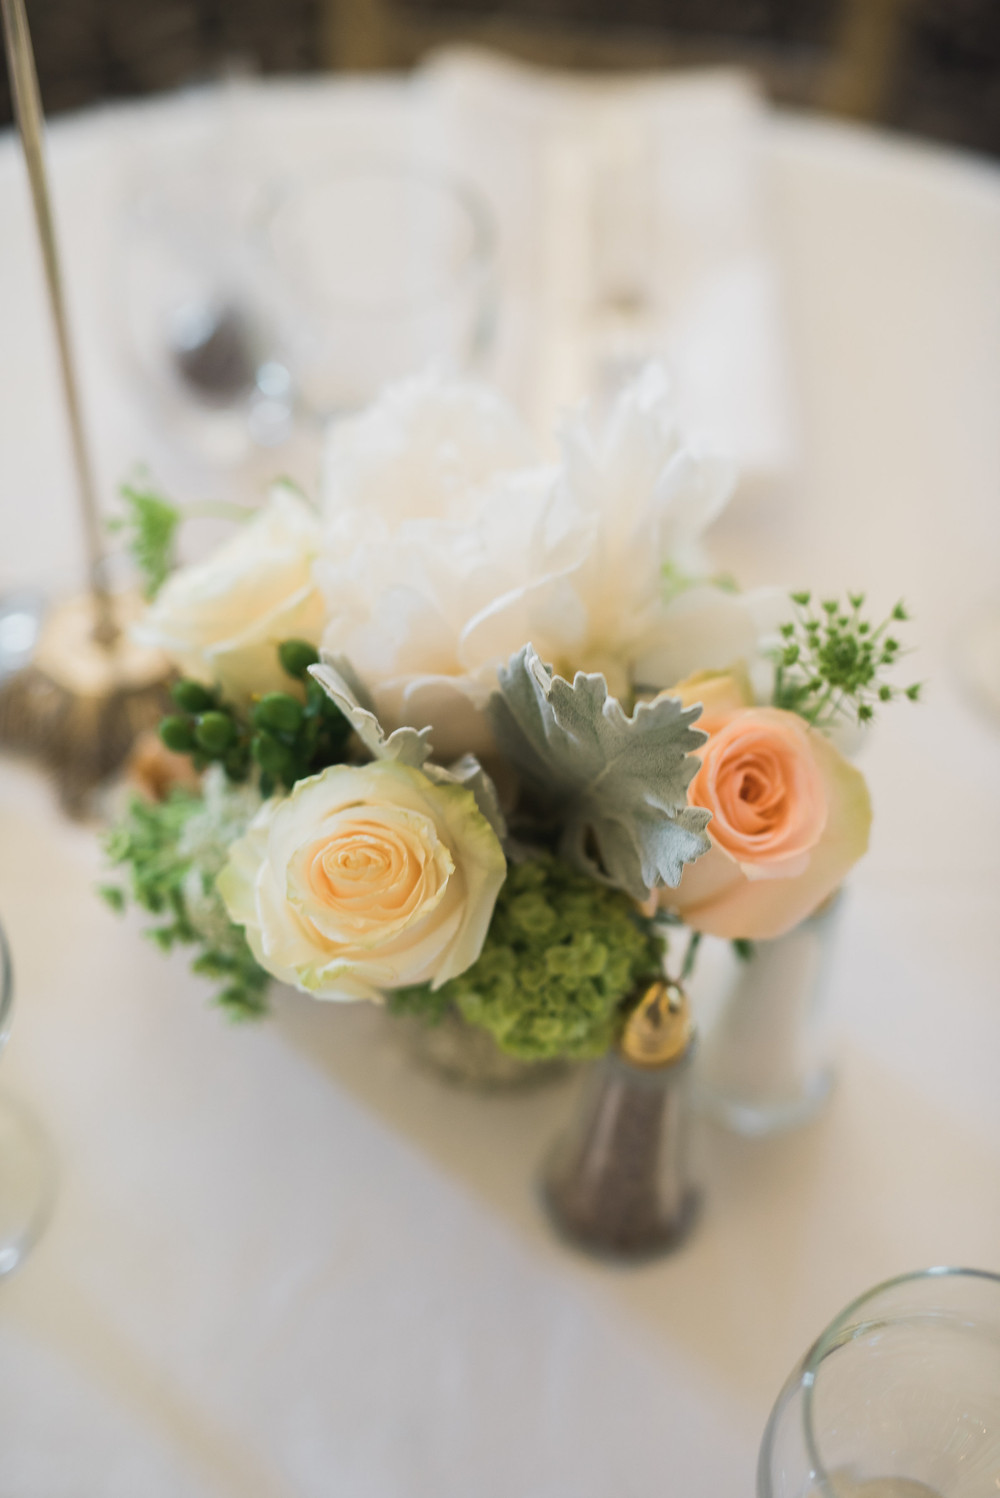 Floral Centerpieces | Visual Impact Design wedding flowers | Custock Photography